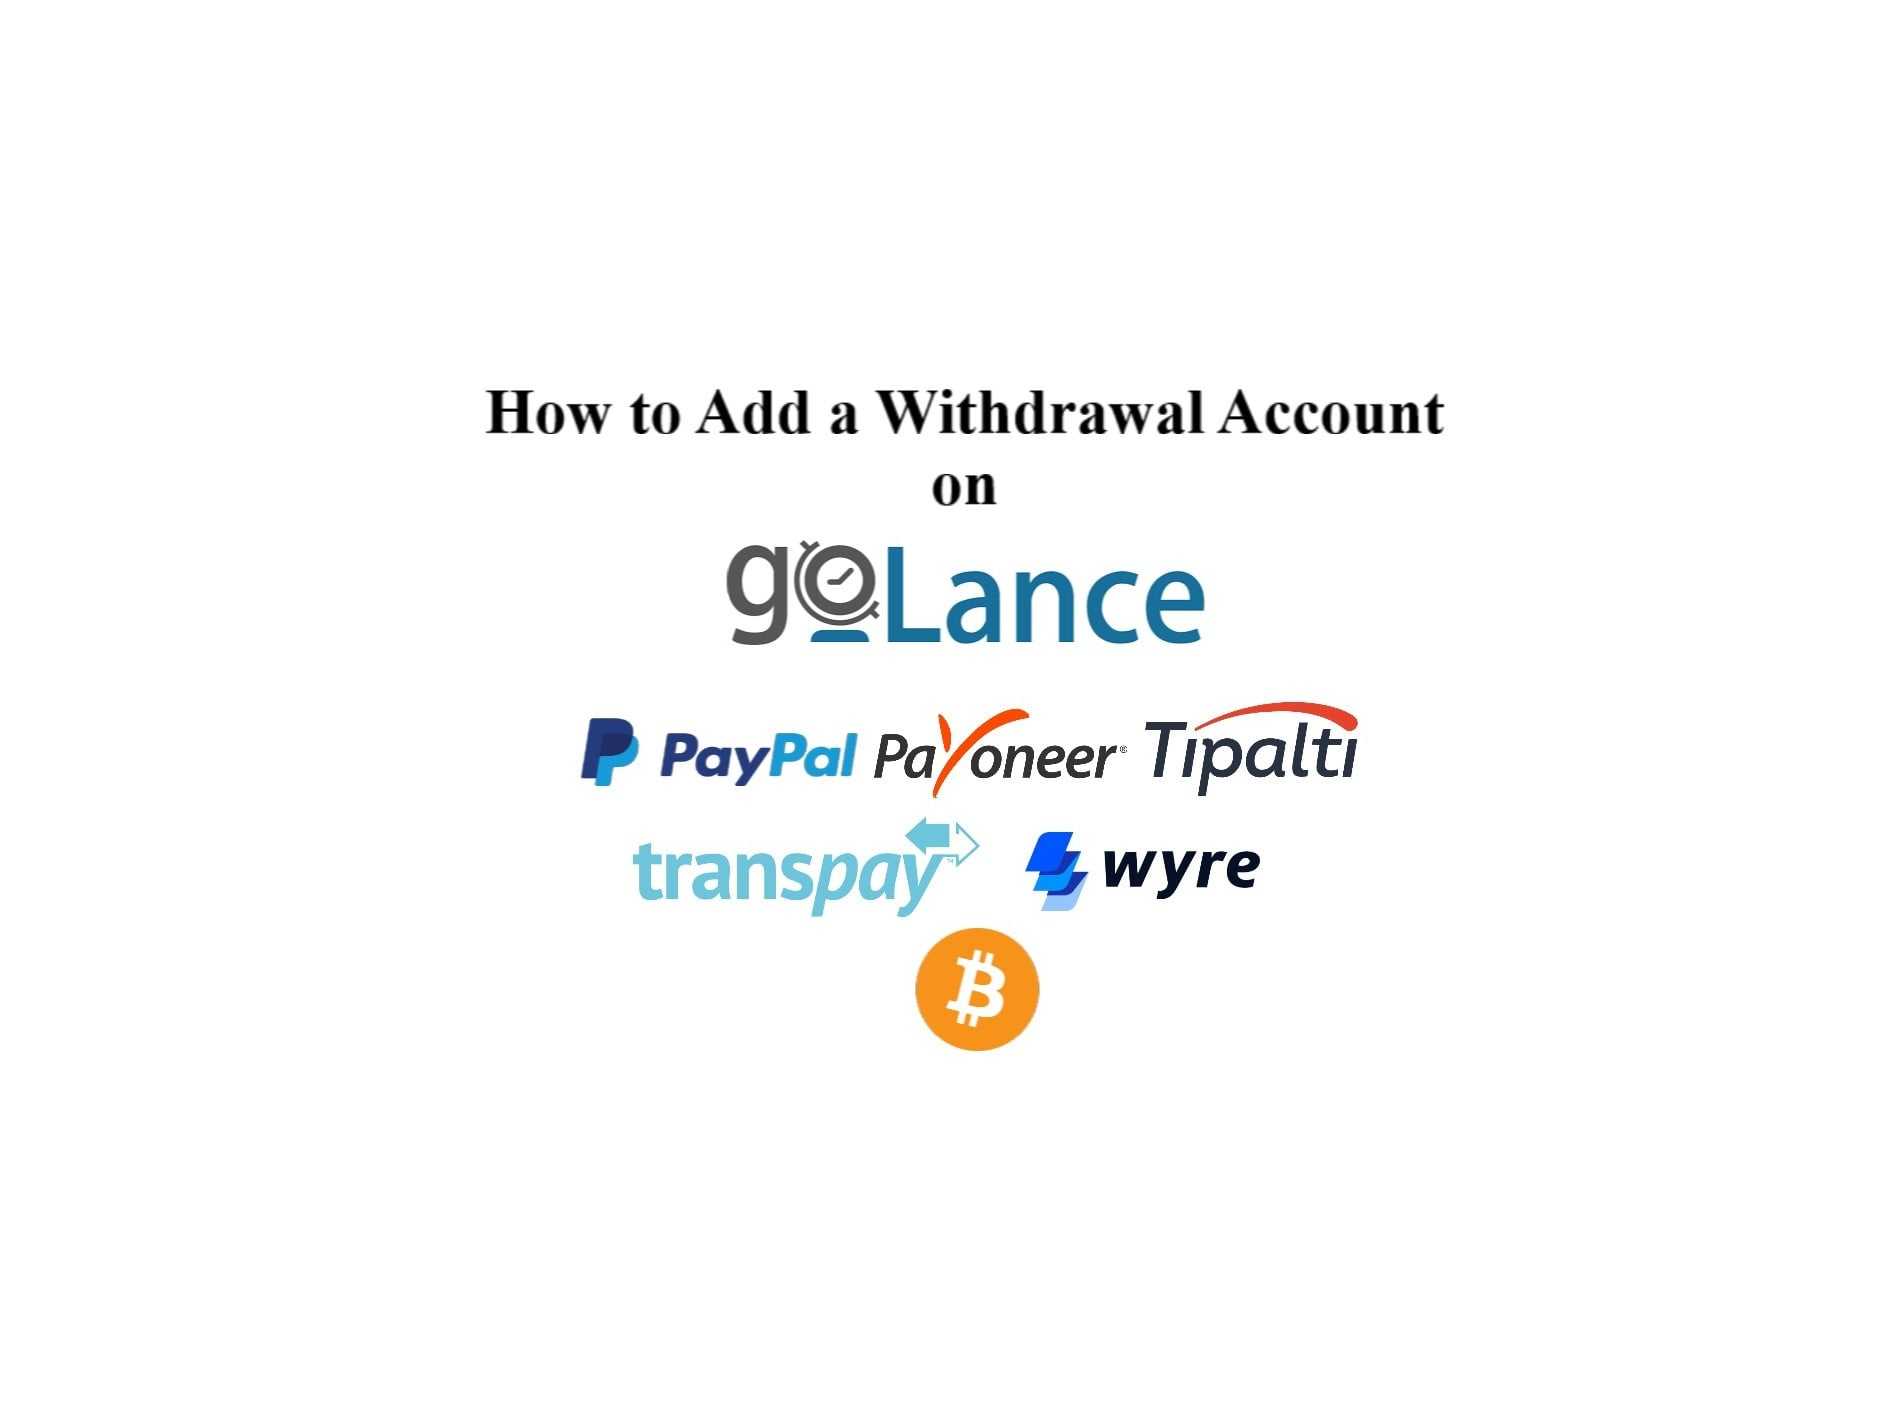 How To Add a Withdrawal Account on goLance